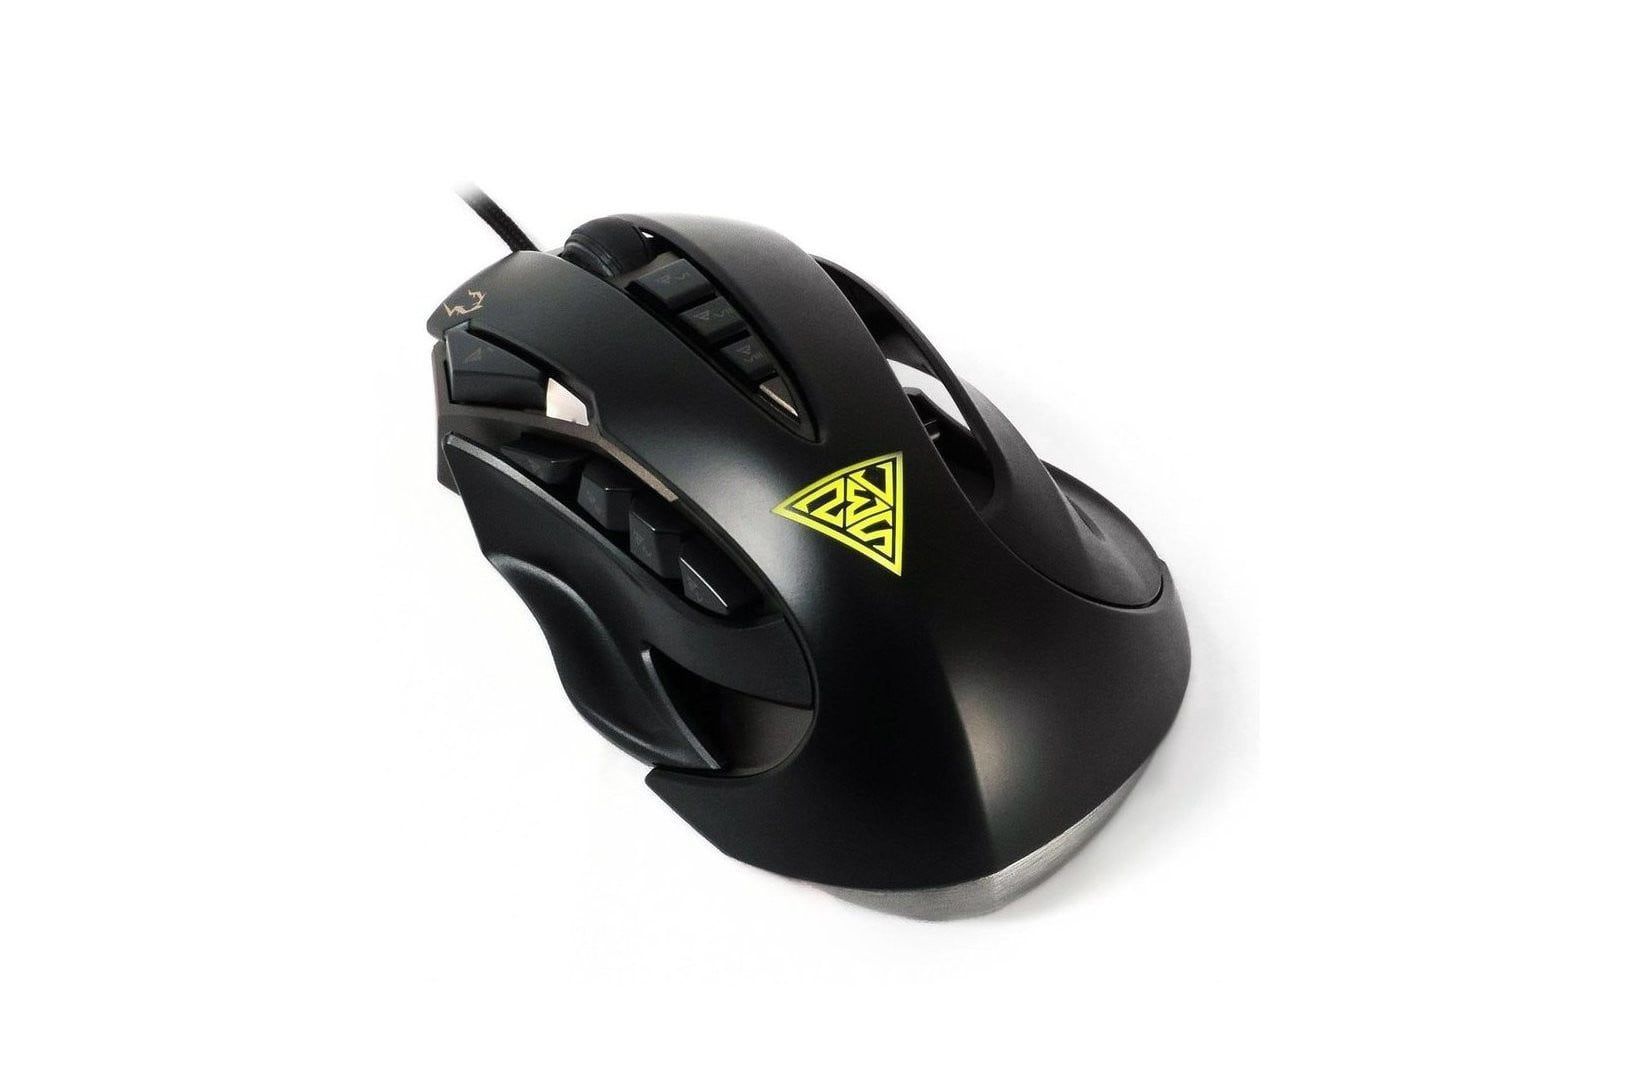 Gamdias Zeus GMS1100 Gaming Mouse